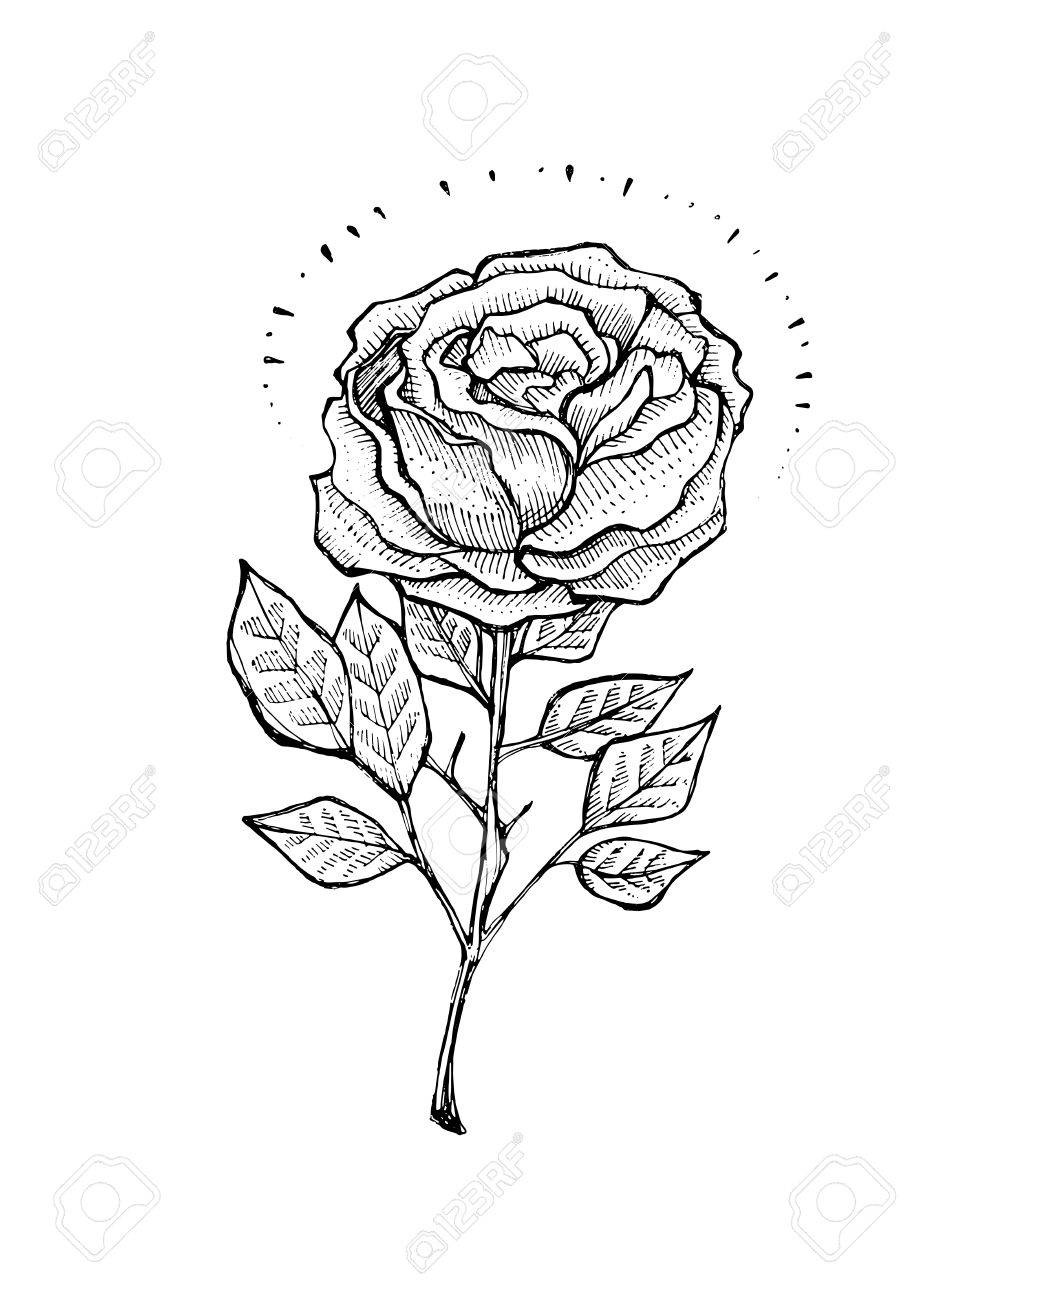 Illustration Dessine A La Main Ou Dessin D Une Rose Dans Un Style De